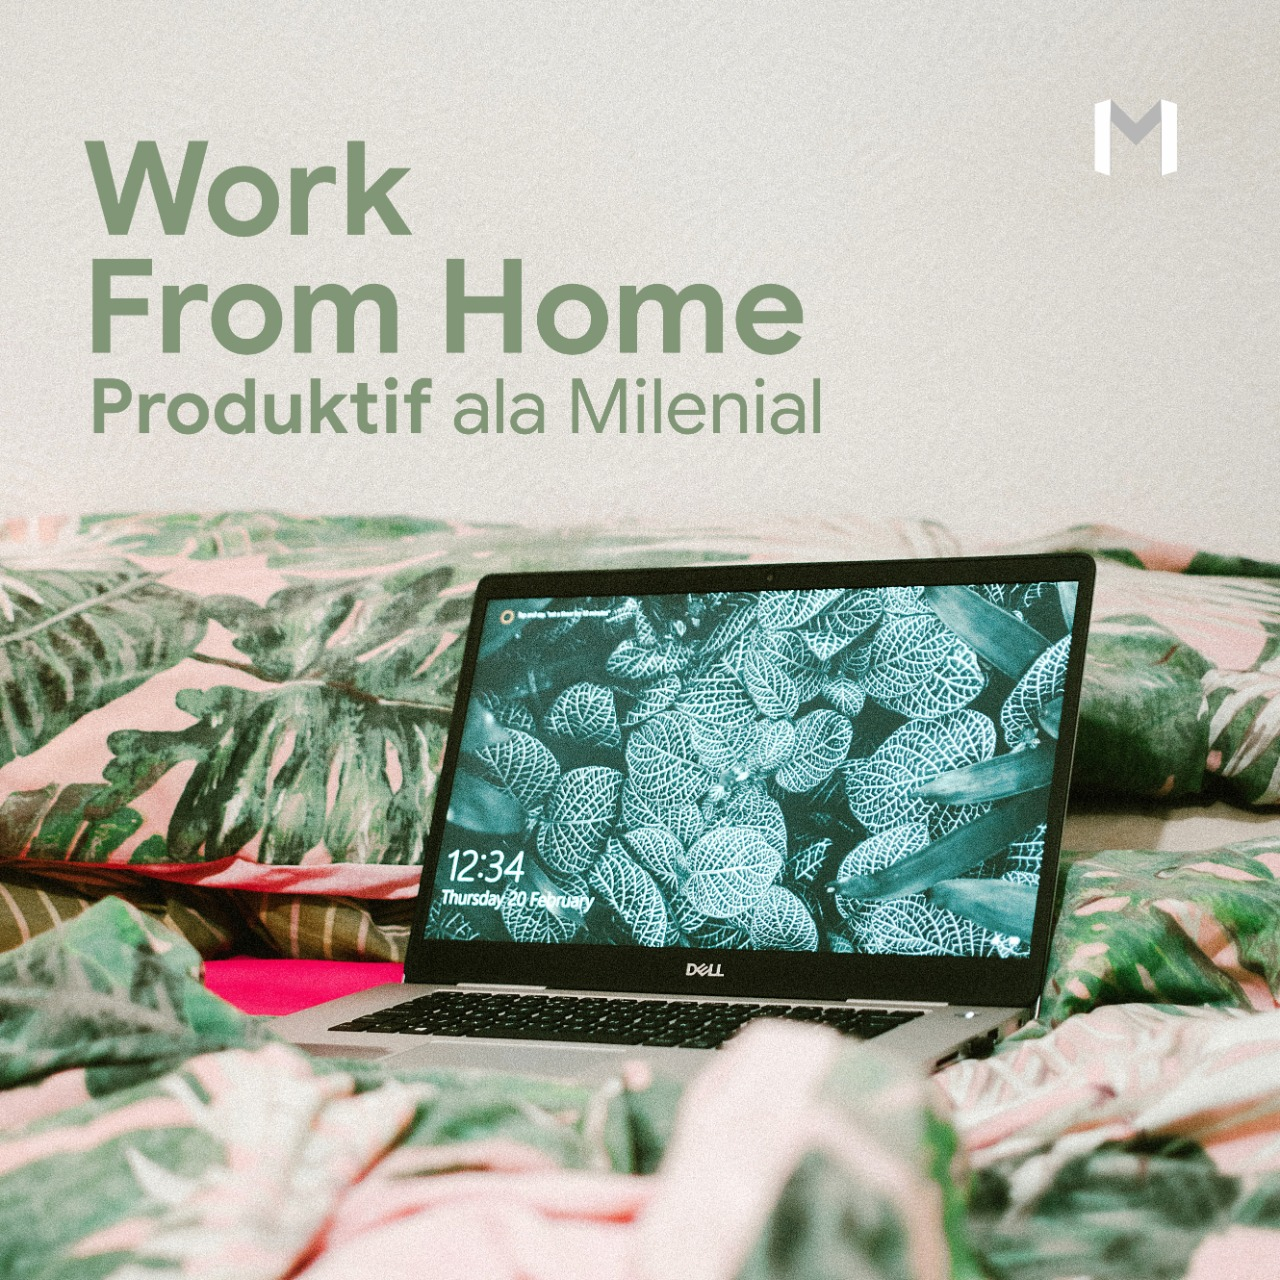 Work from Home: Produktif ala Milenial